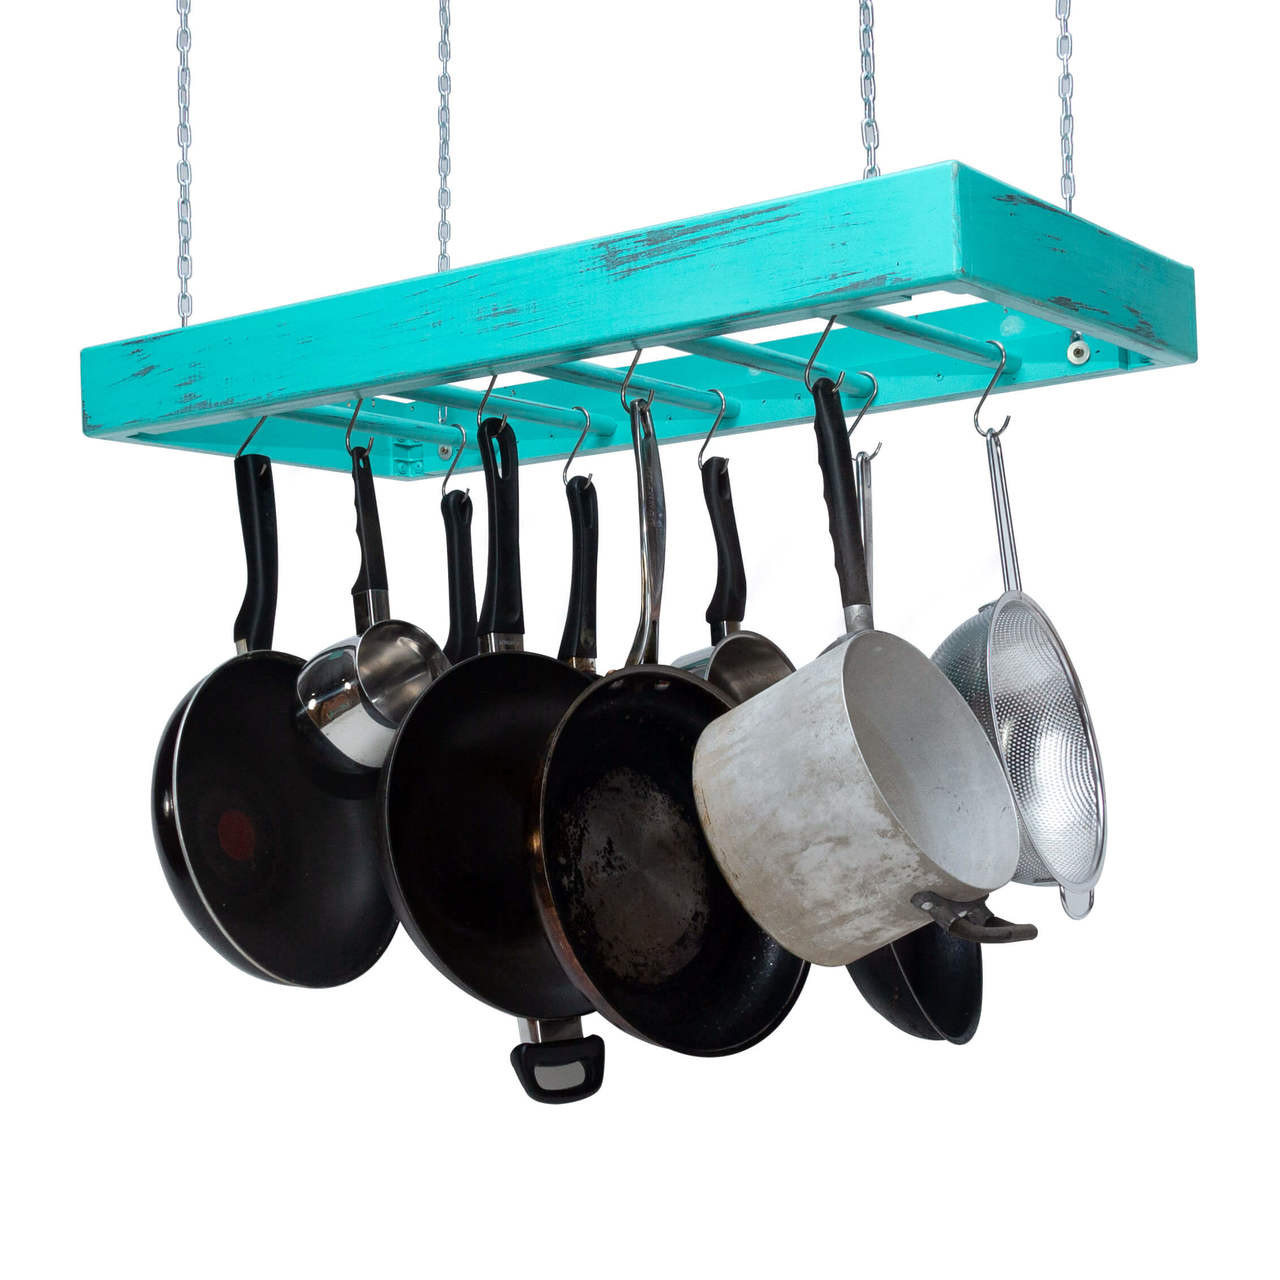 Hanging Pot Rack - Wooden - Ceiling Mounted - Rectangular ...